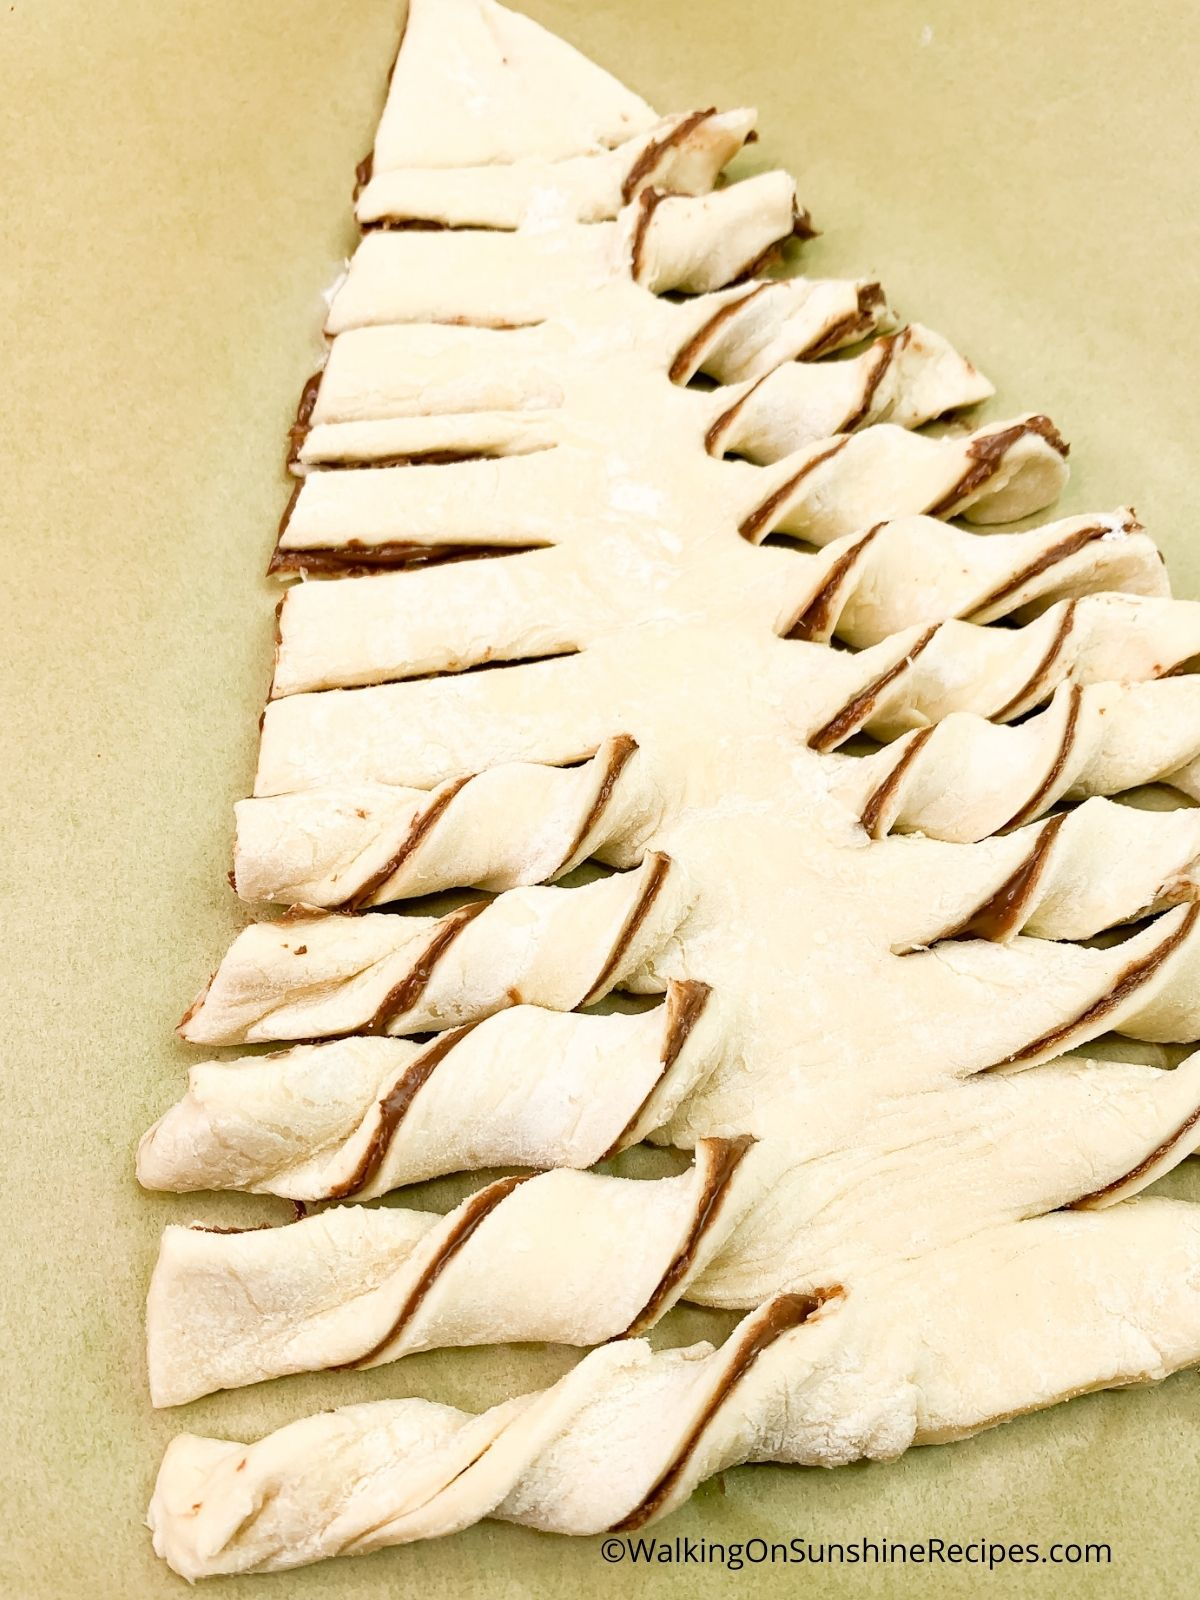 Twist Nutella puff pastry xmas tree branches.